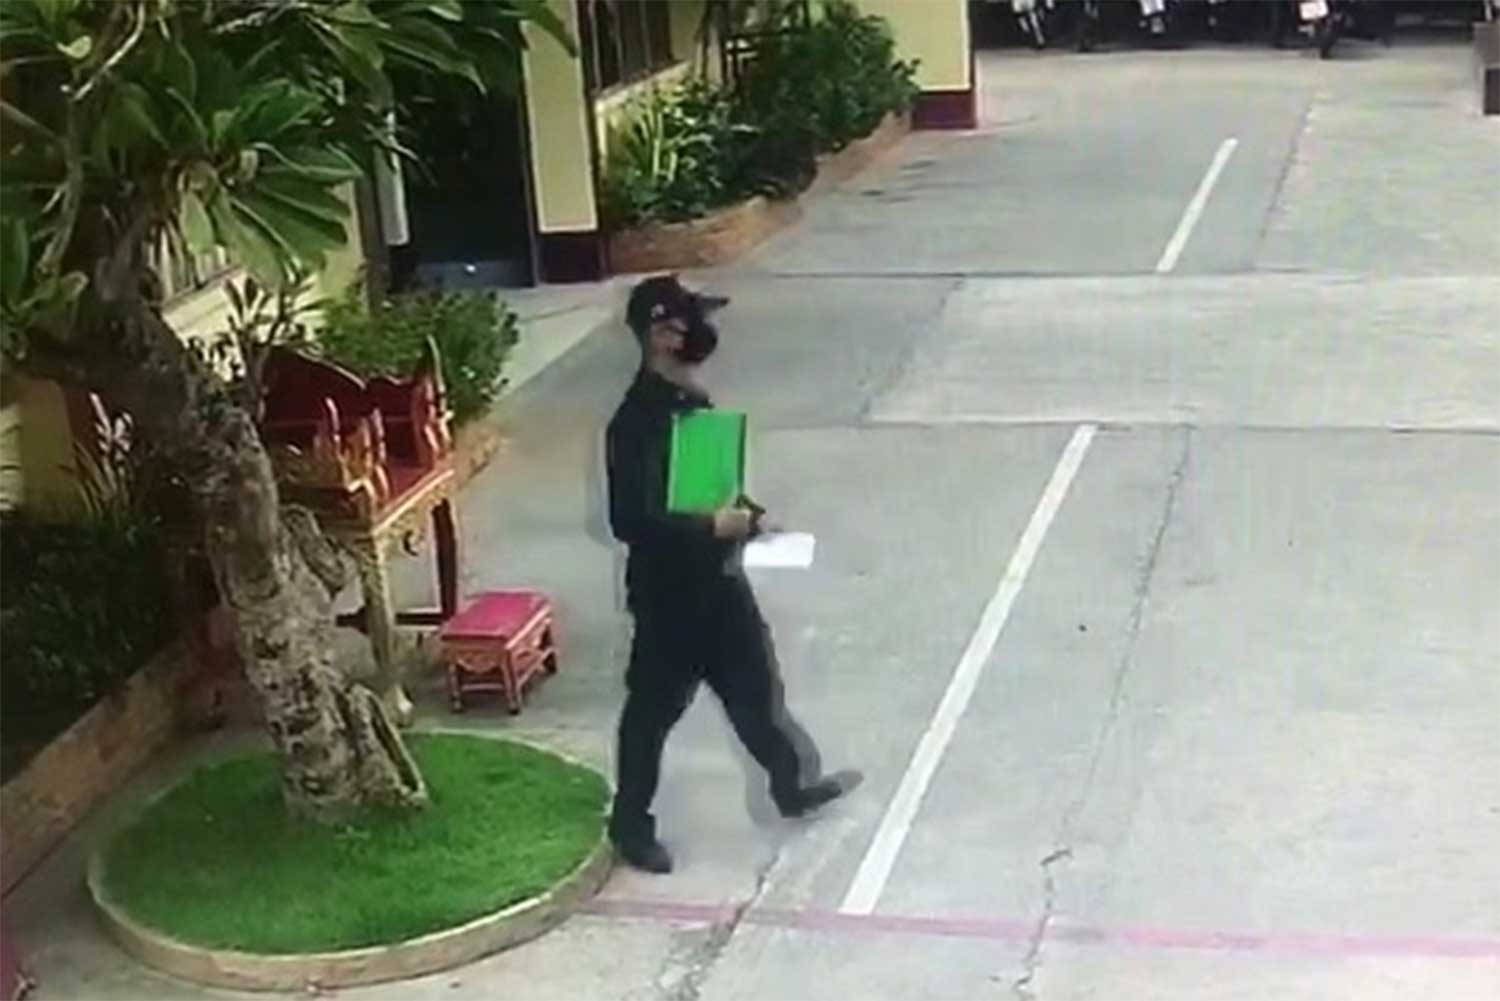 Inmate Wutthichai Detchasithanawat, 35, wearing a stolen warder's uniform, walks casually out of Phetchabun prison on Thursday morning. (Capture from CCTV)